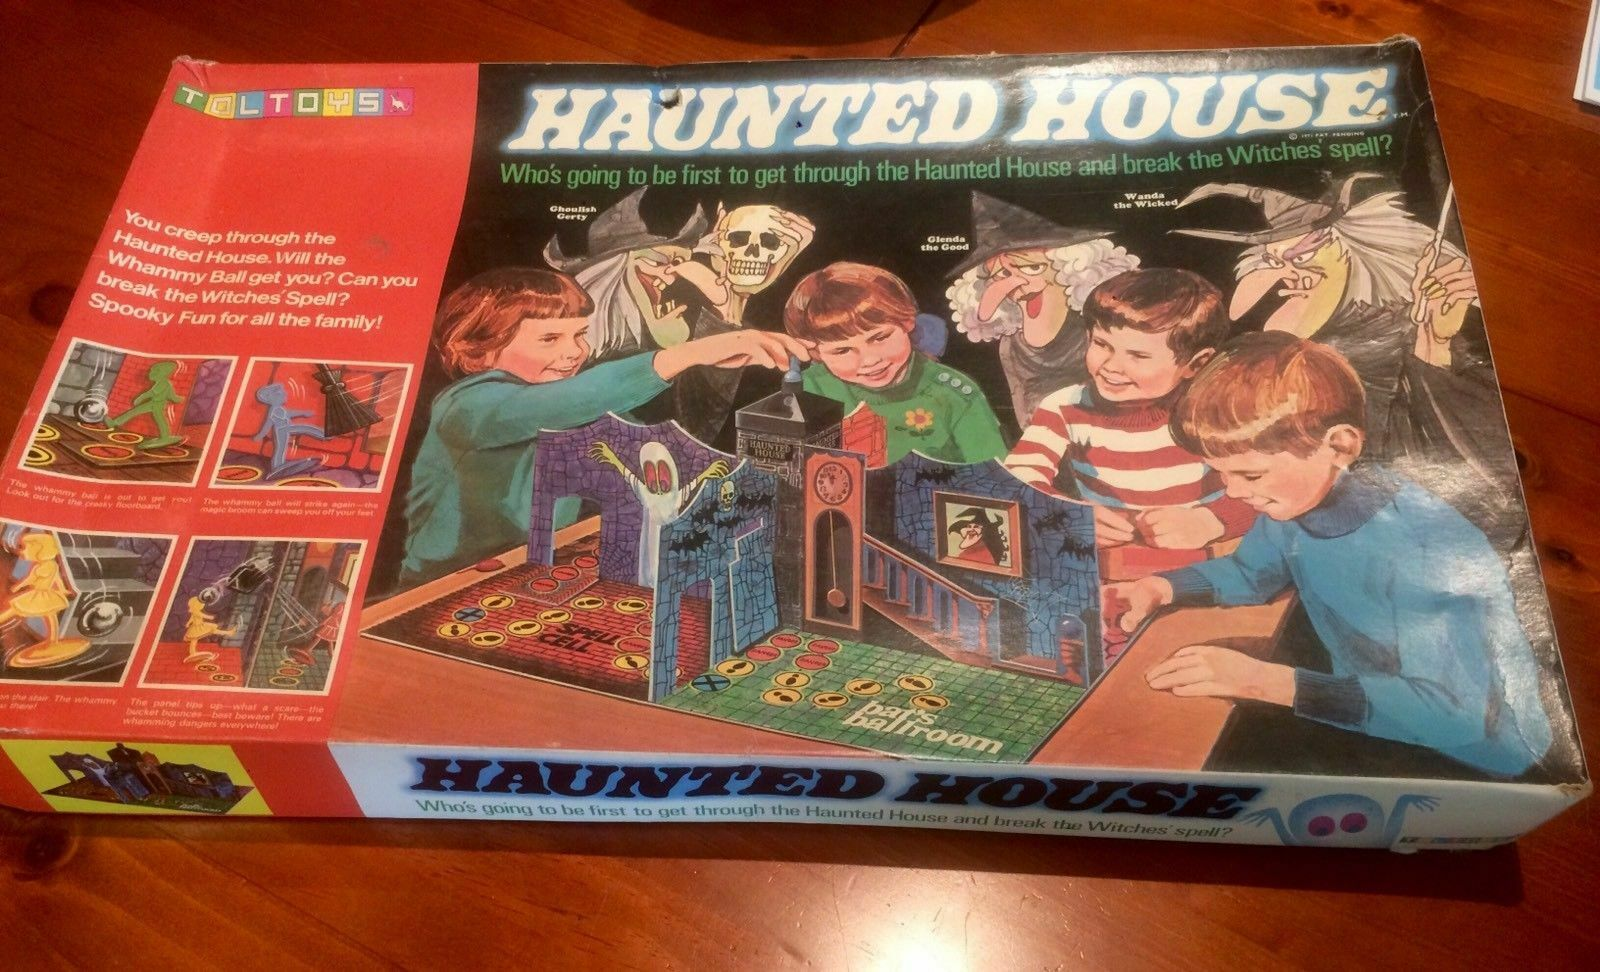 Haunted  House Board Game - TolToys - 1971 - Extremely Rare.  en ligne pas cher